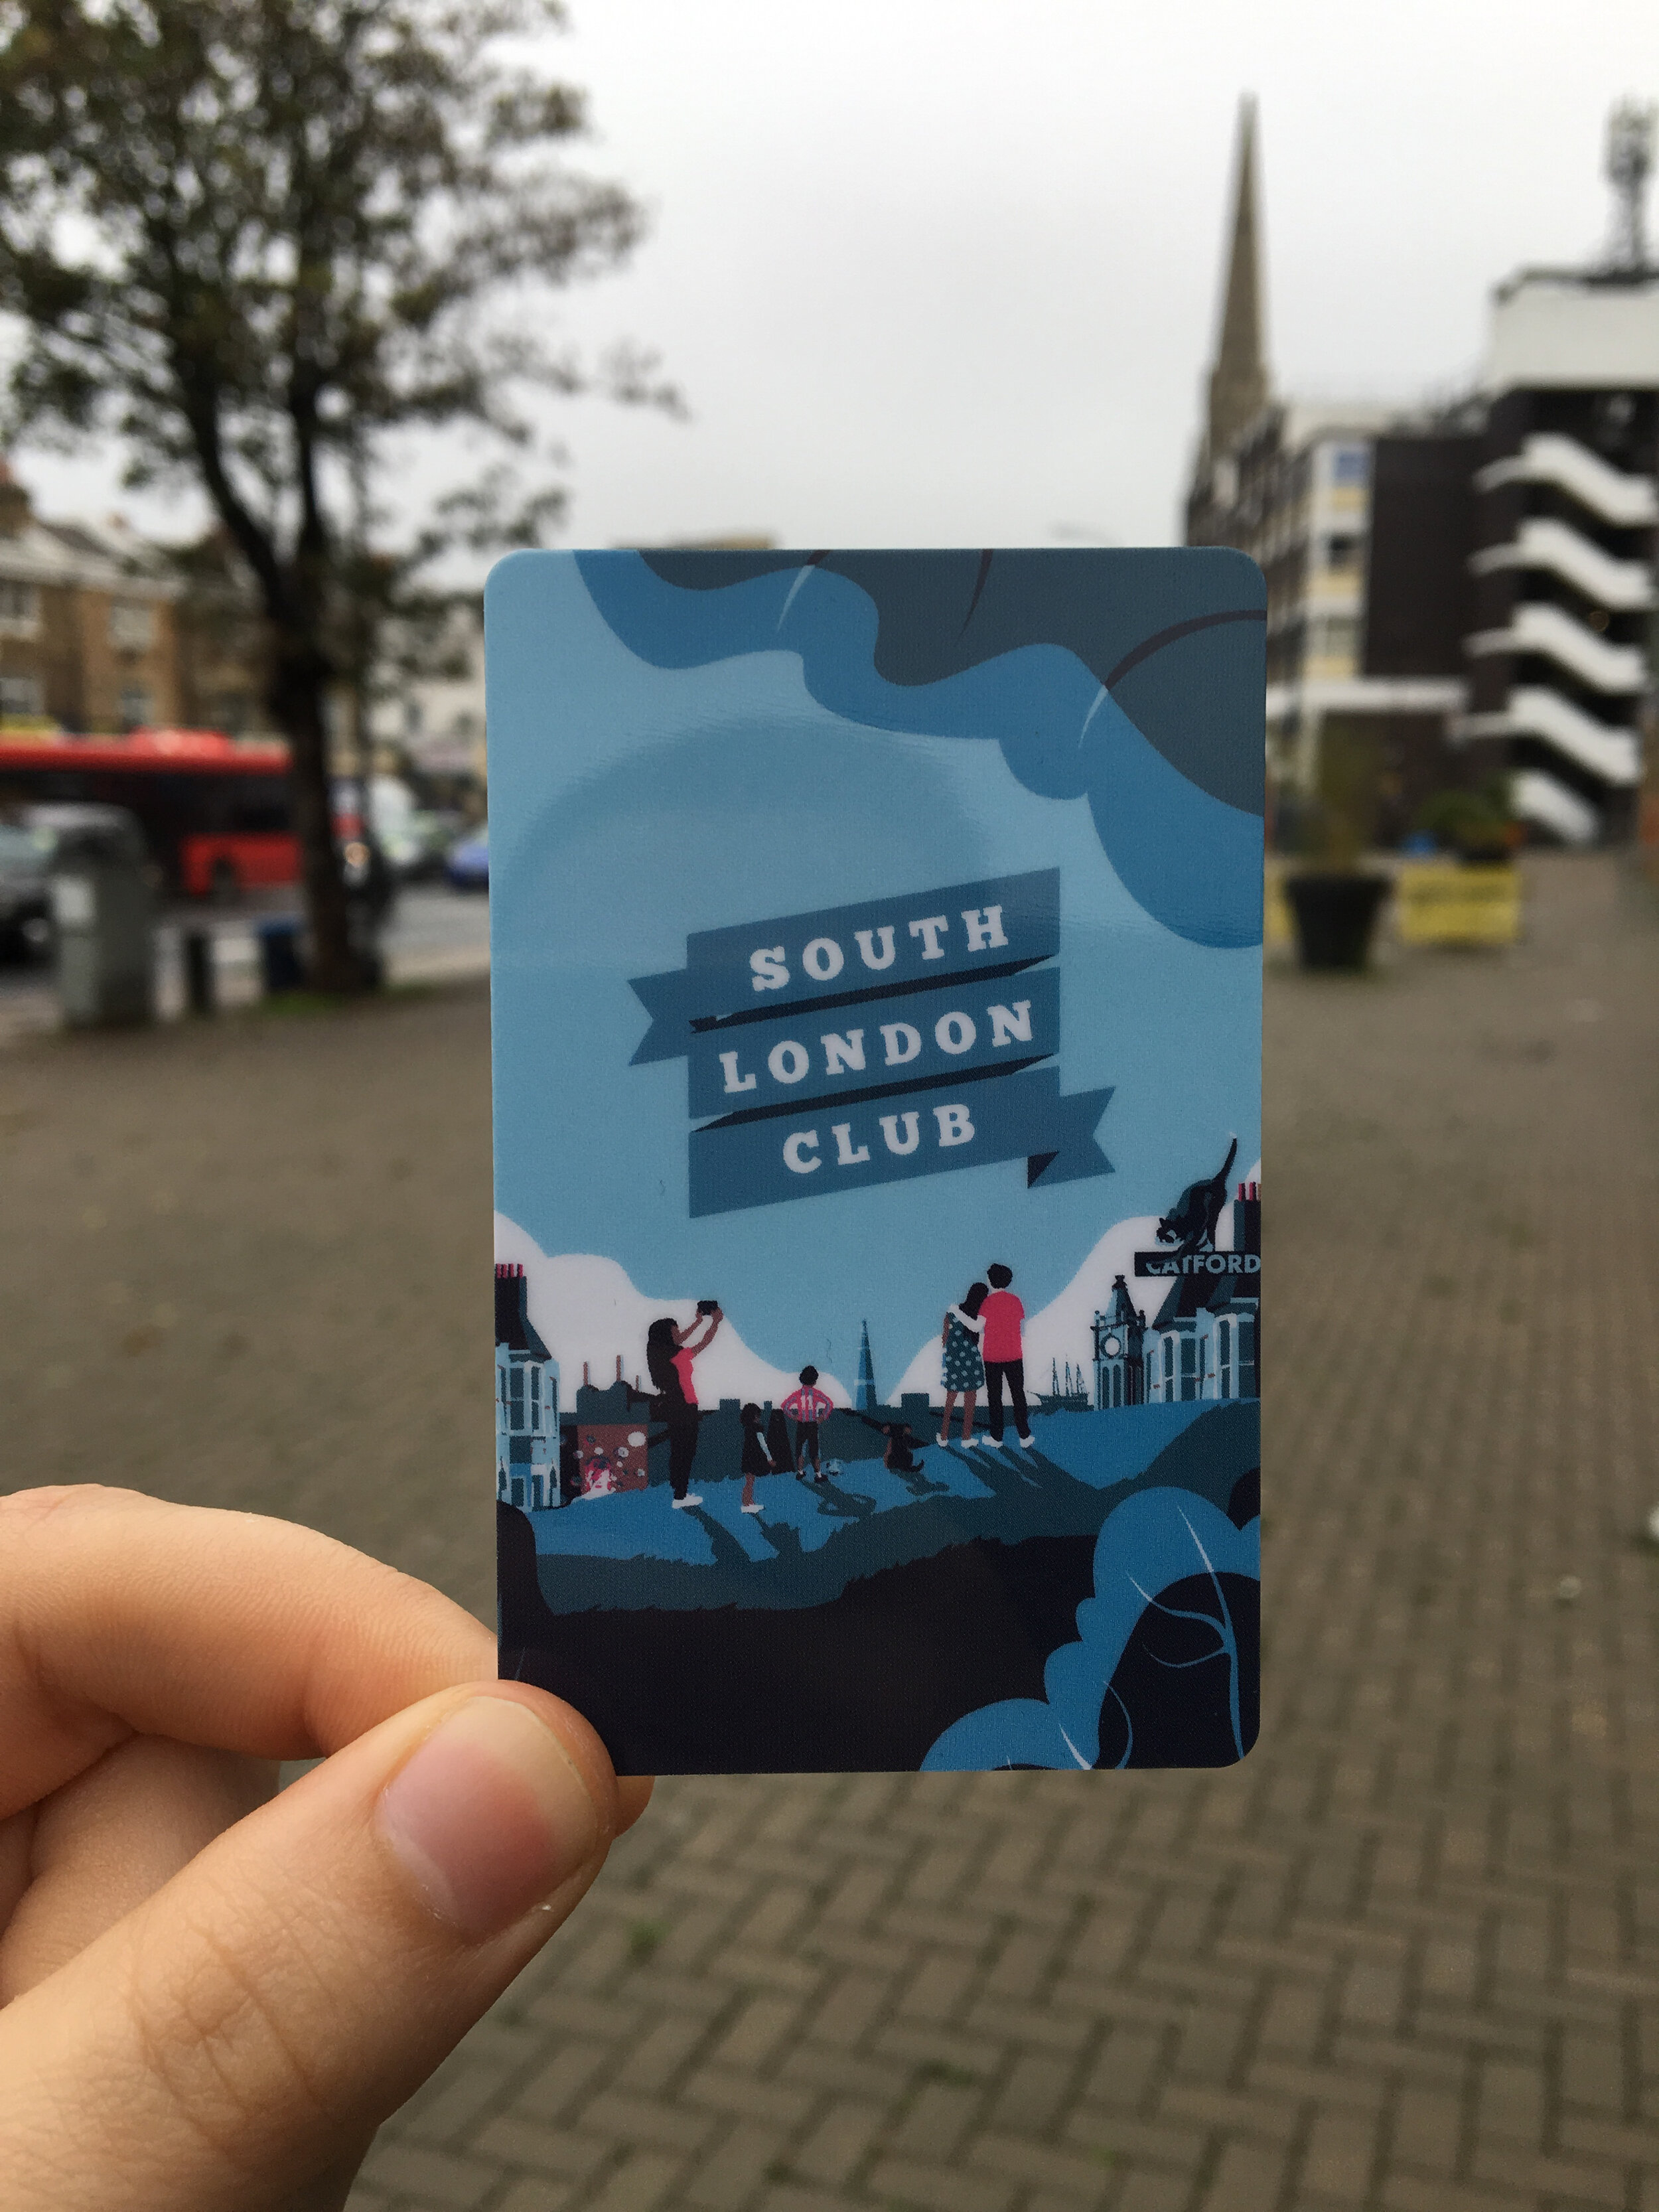 south london club card.jpg